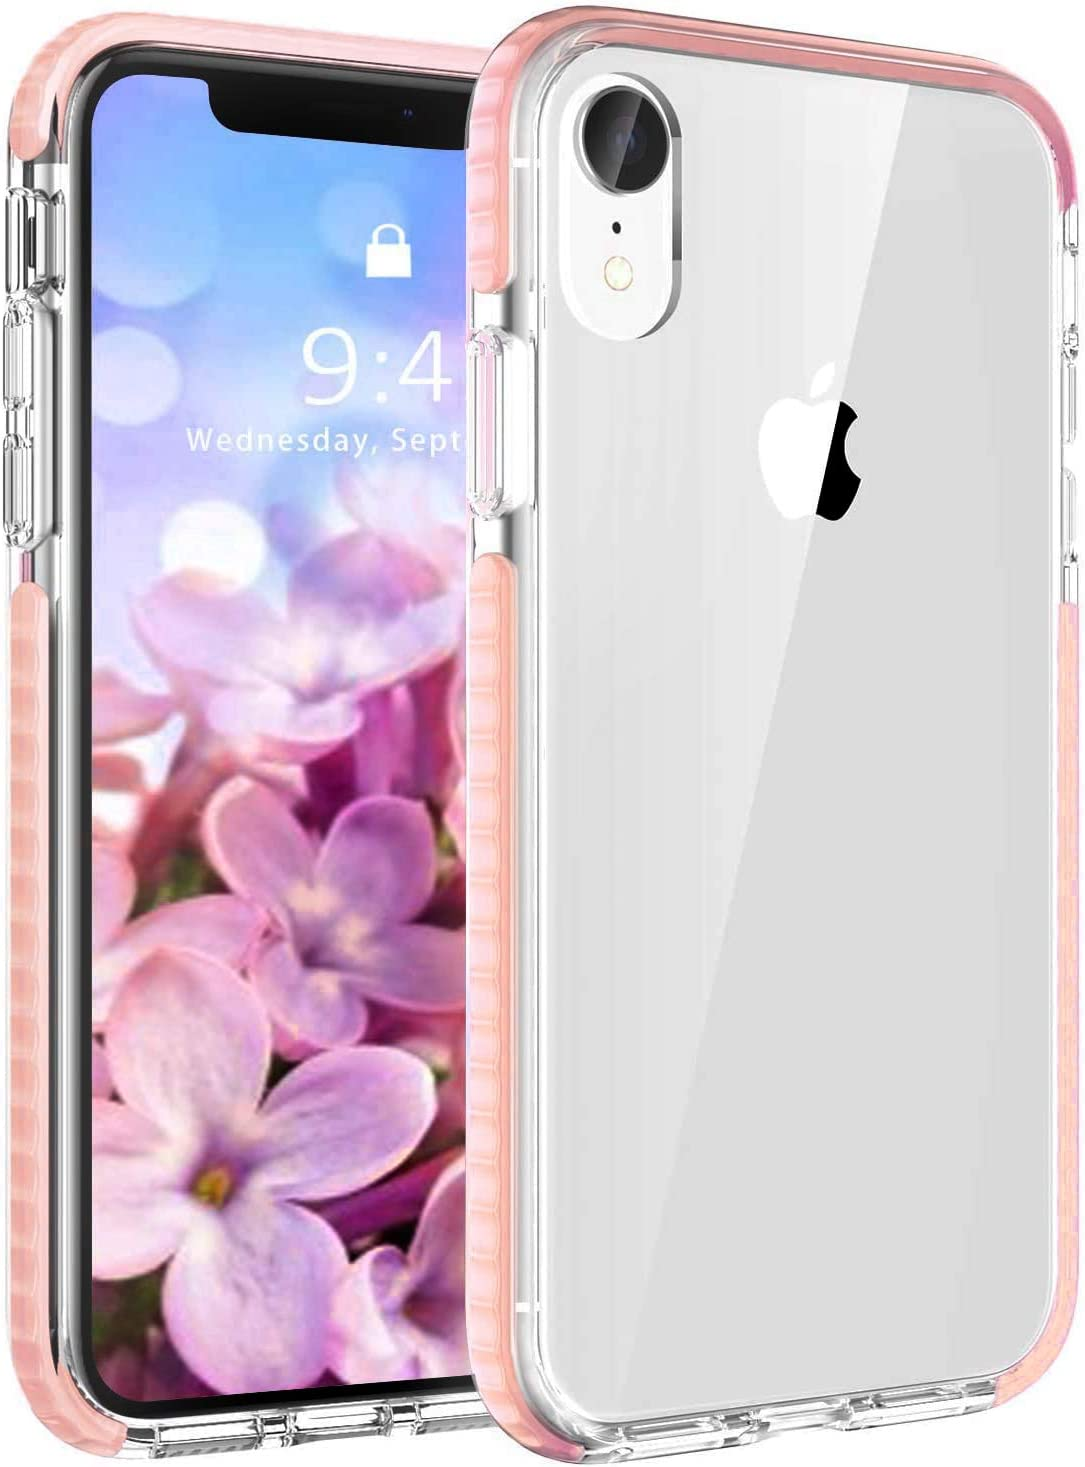 EFFENX iPhone XR Case Clear Pink -Thin Slim Anti-Yellow Anti-Scratches Protective Cover Heavy Duty Shockproof Bumper Case for iPhone XR 6.1inch